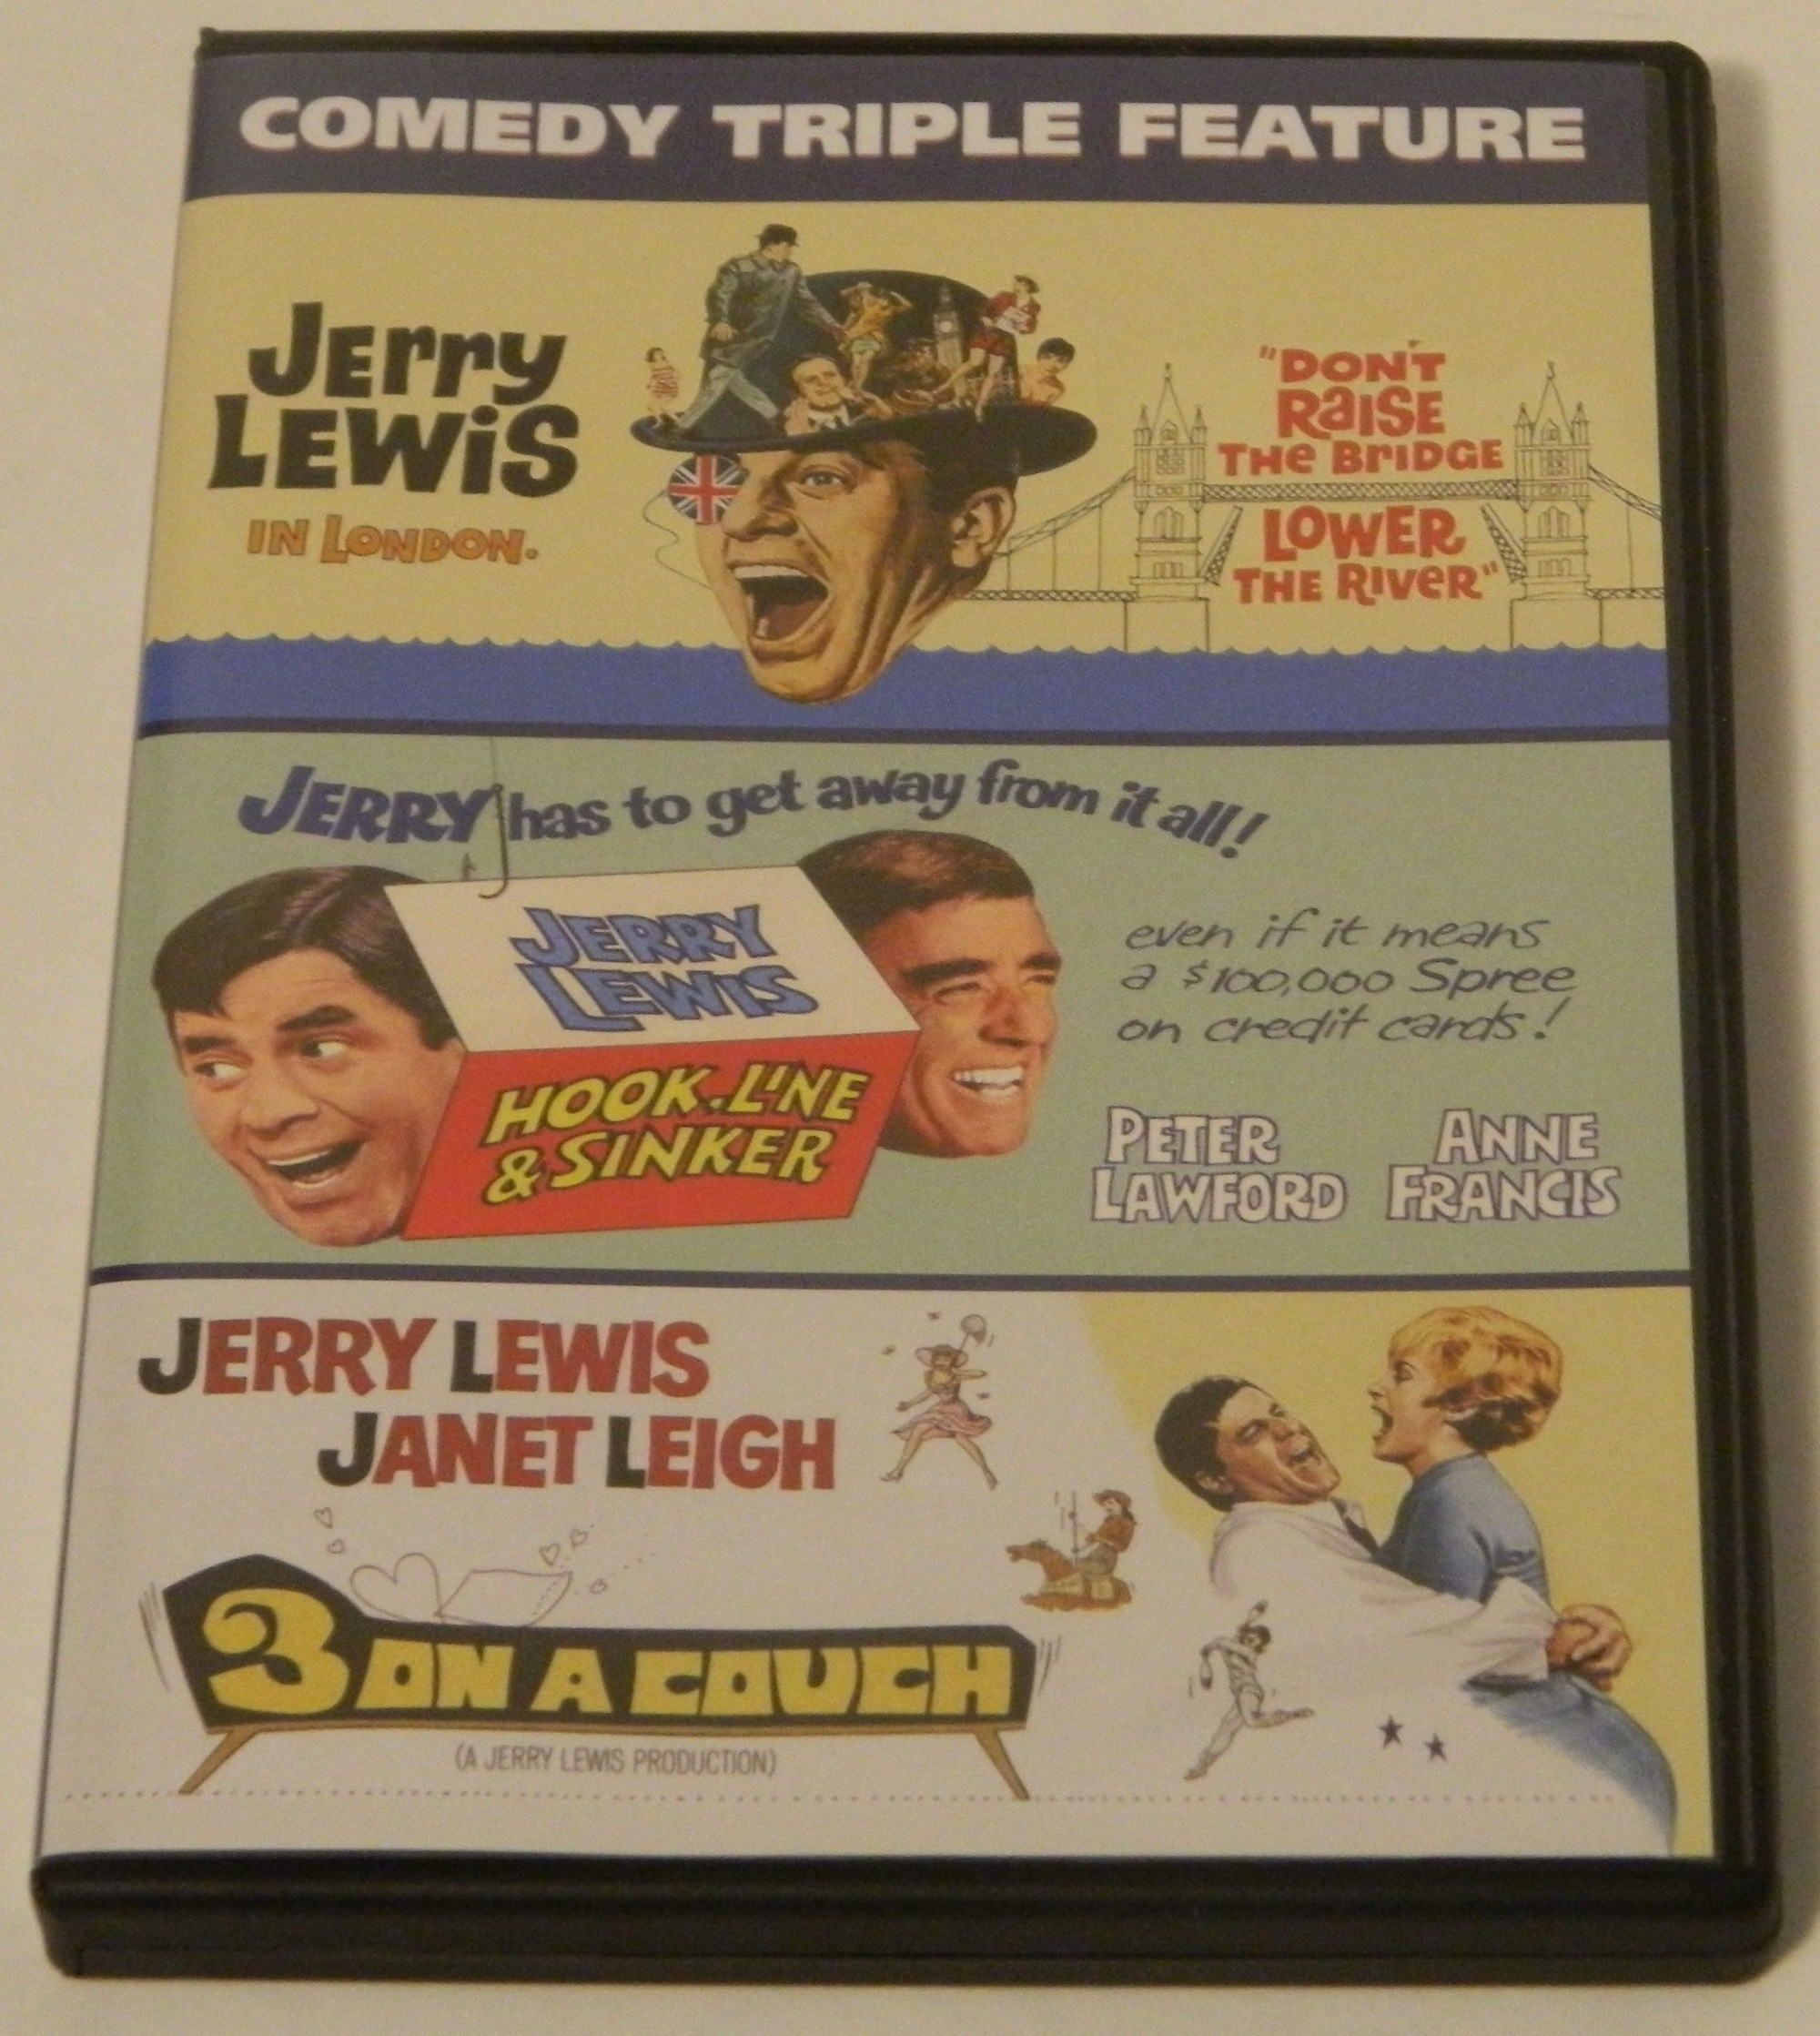 Jerry Lewis Comedy Triple Feature DVD